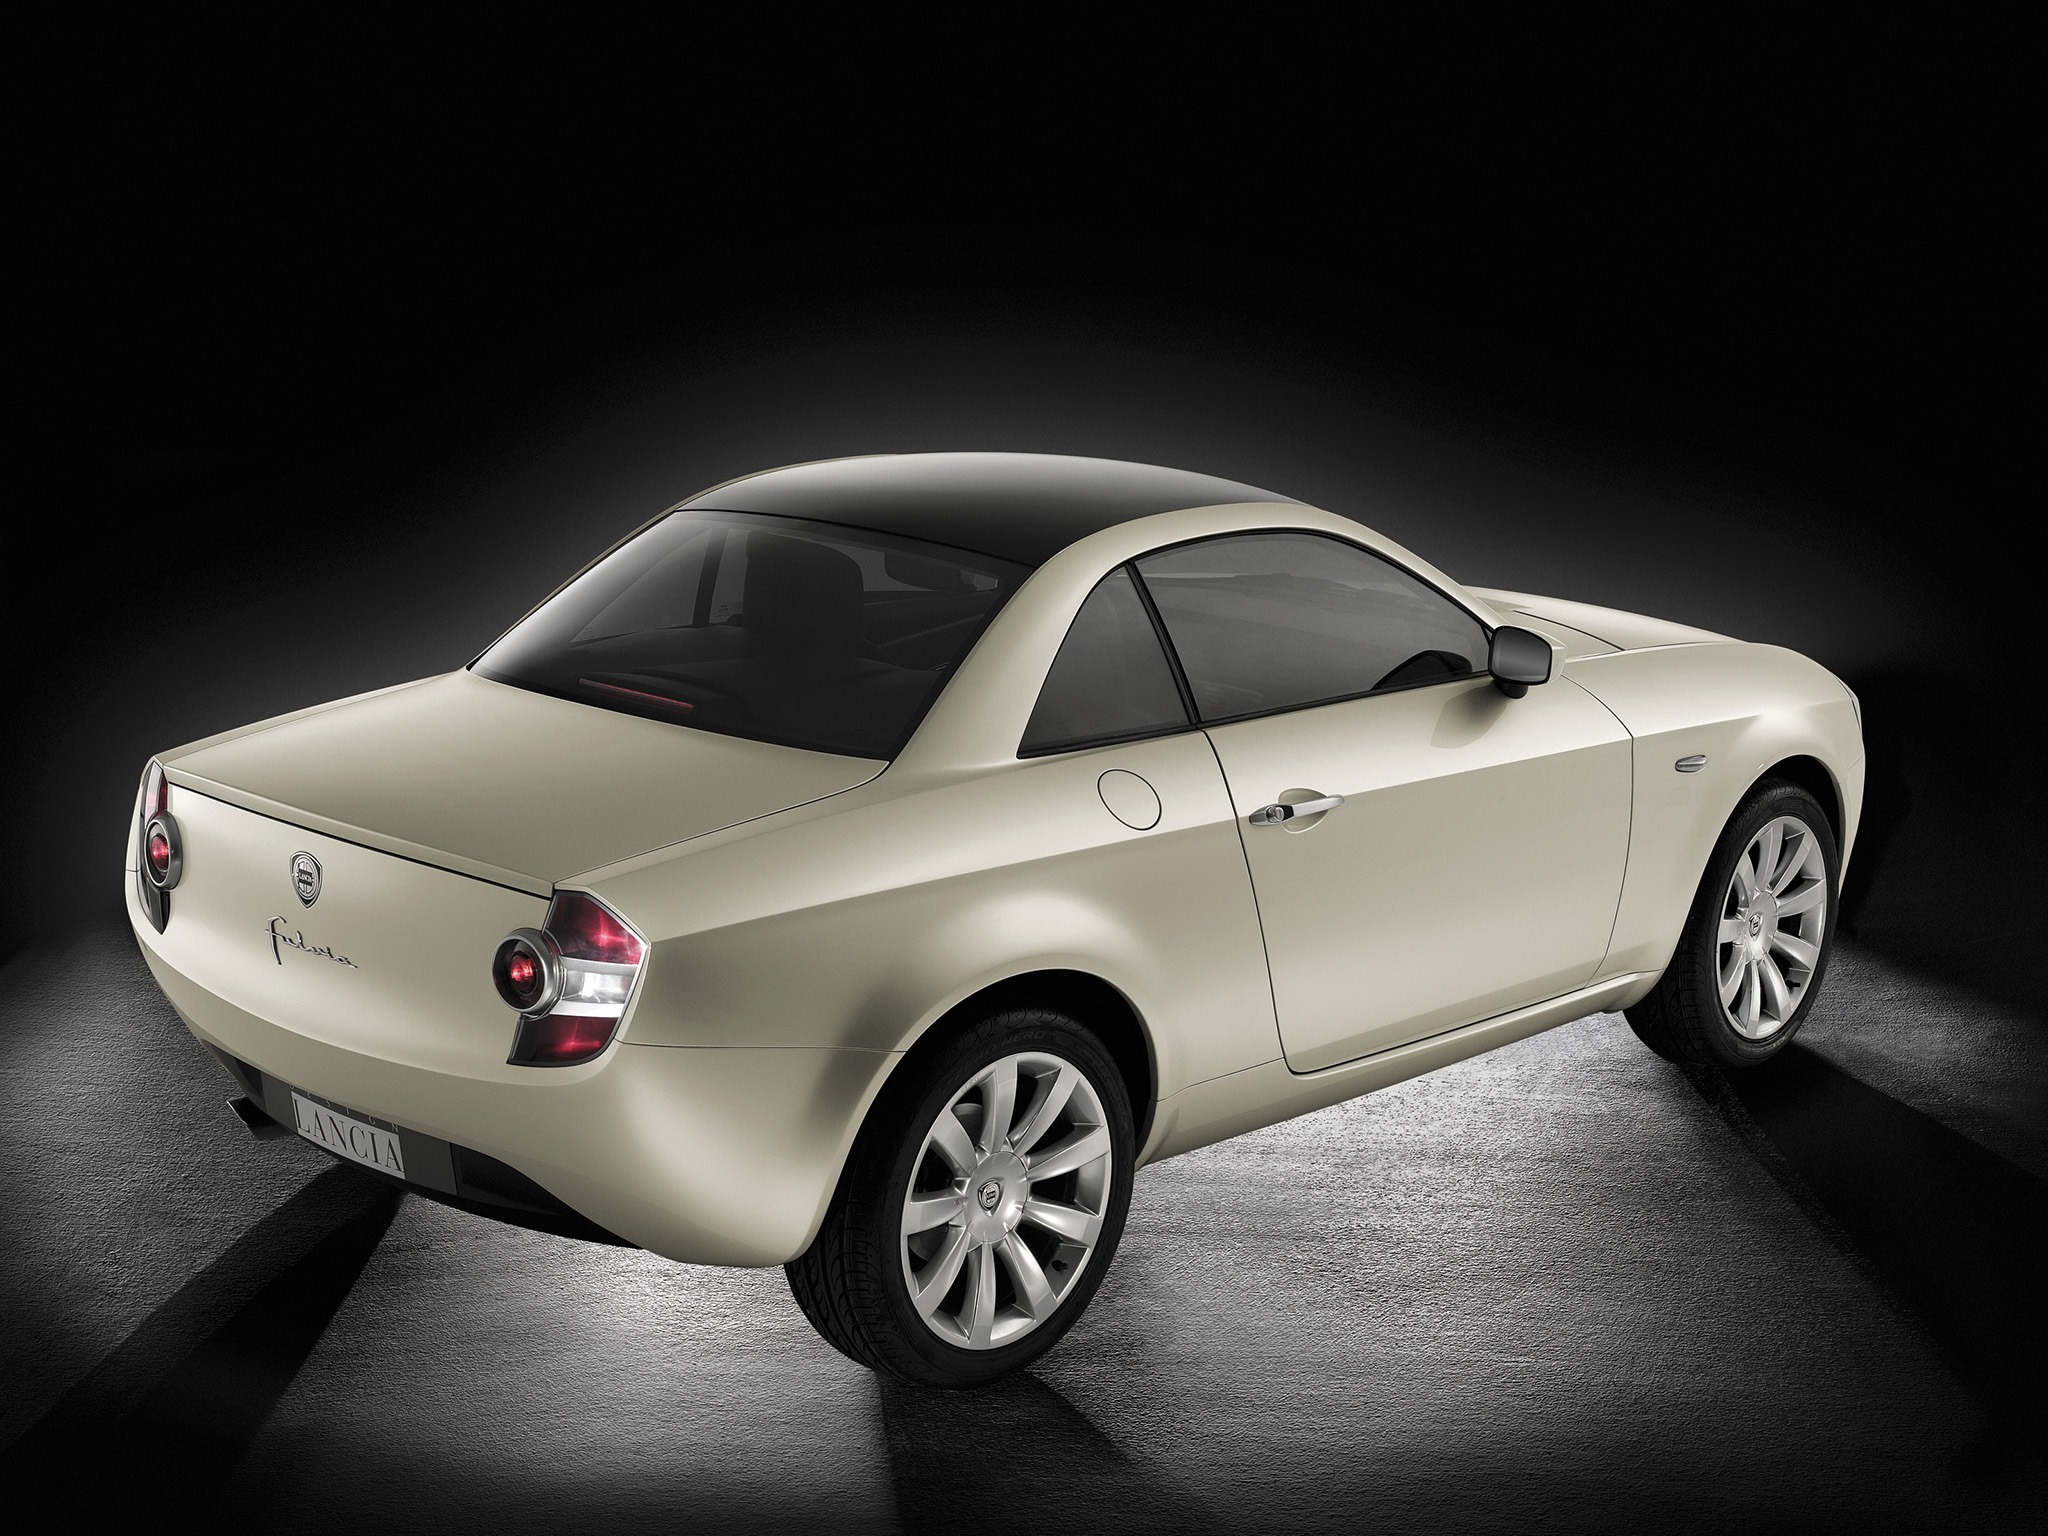 http://oldconceptcars.com/wp-content/uploads/lancia_fulvia_coupe_concept_4.jpg